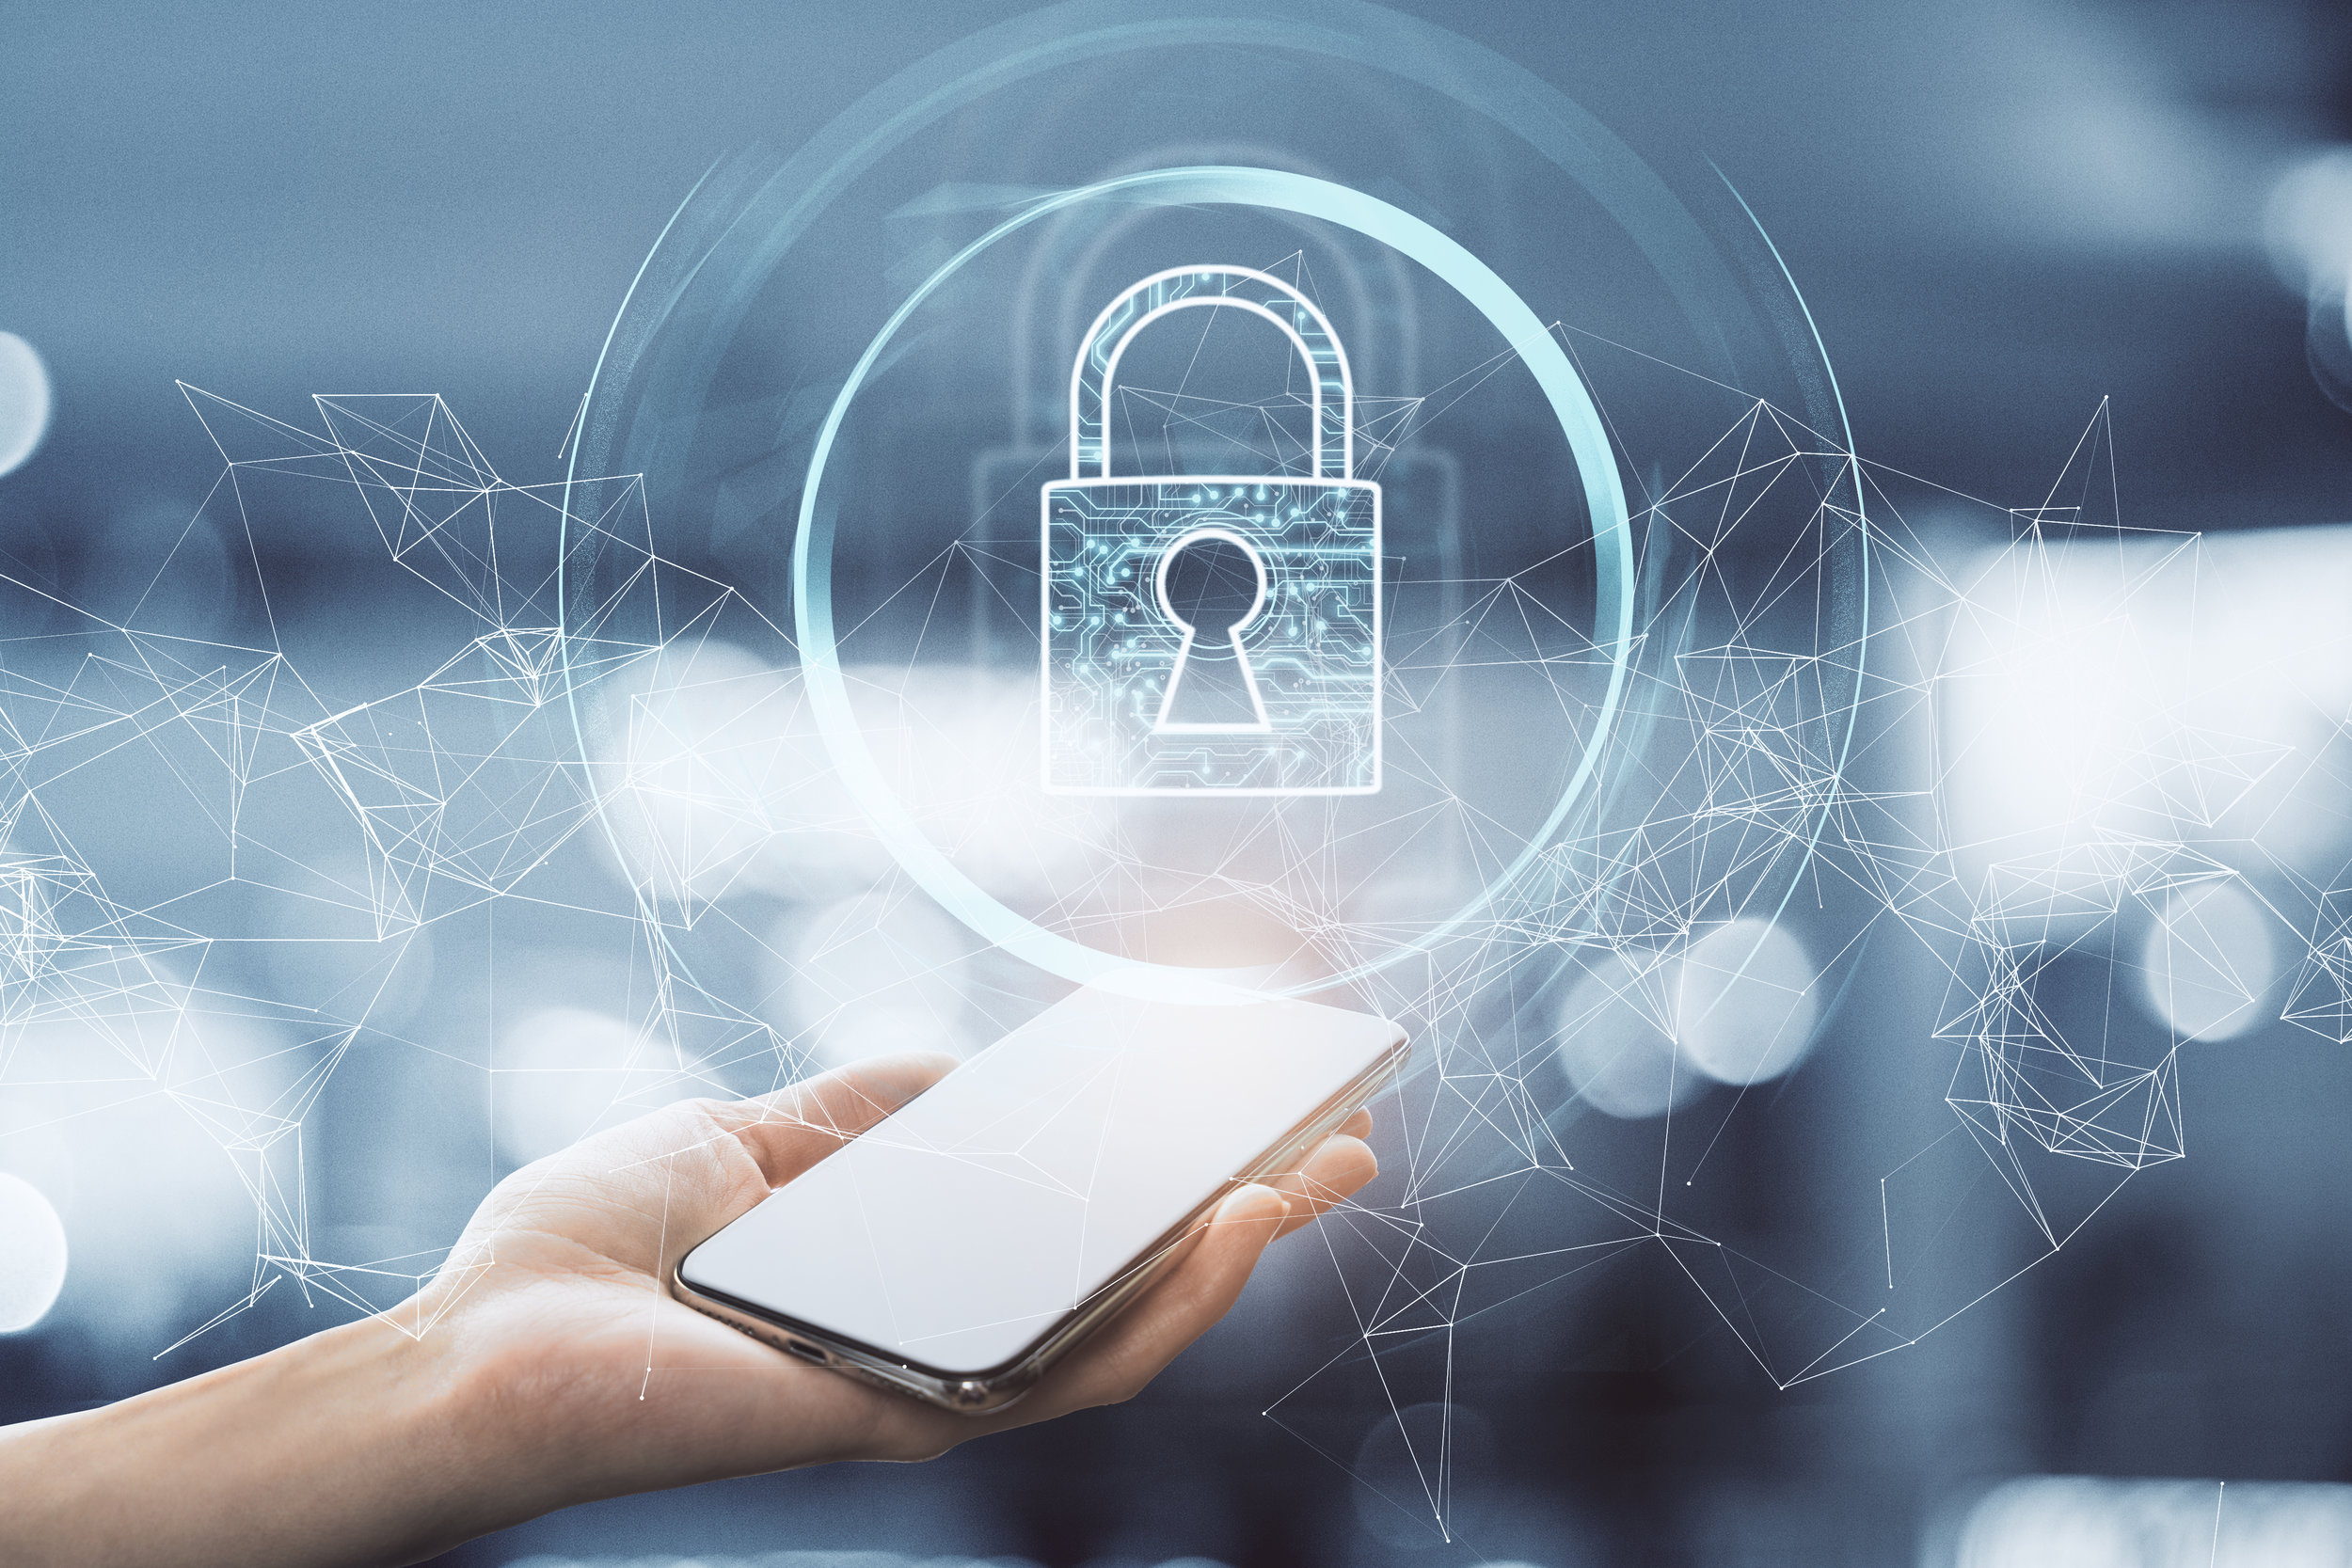 MOBILE SECURITY at its best! -